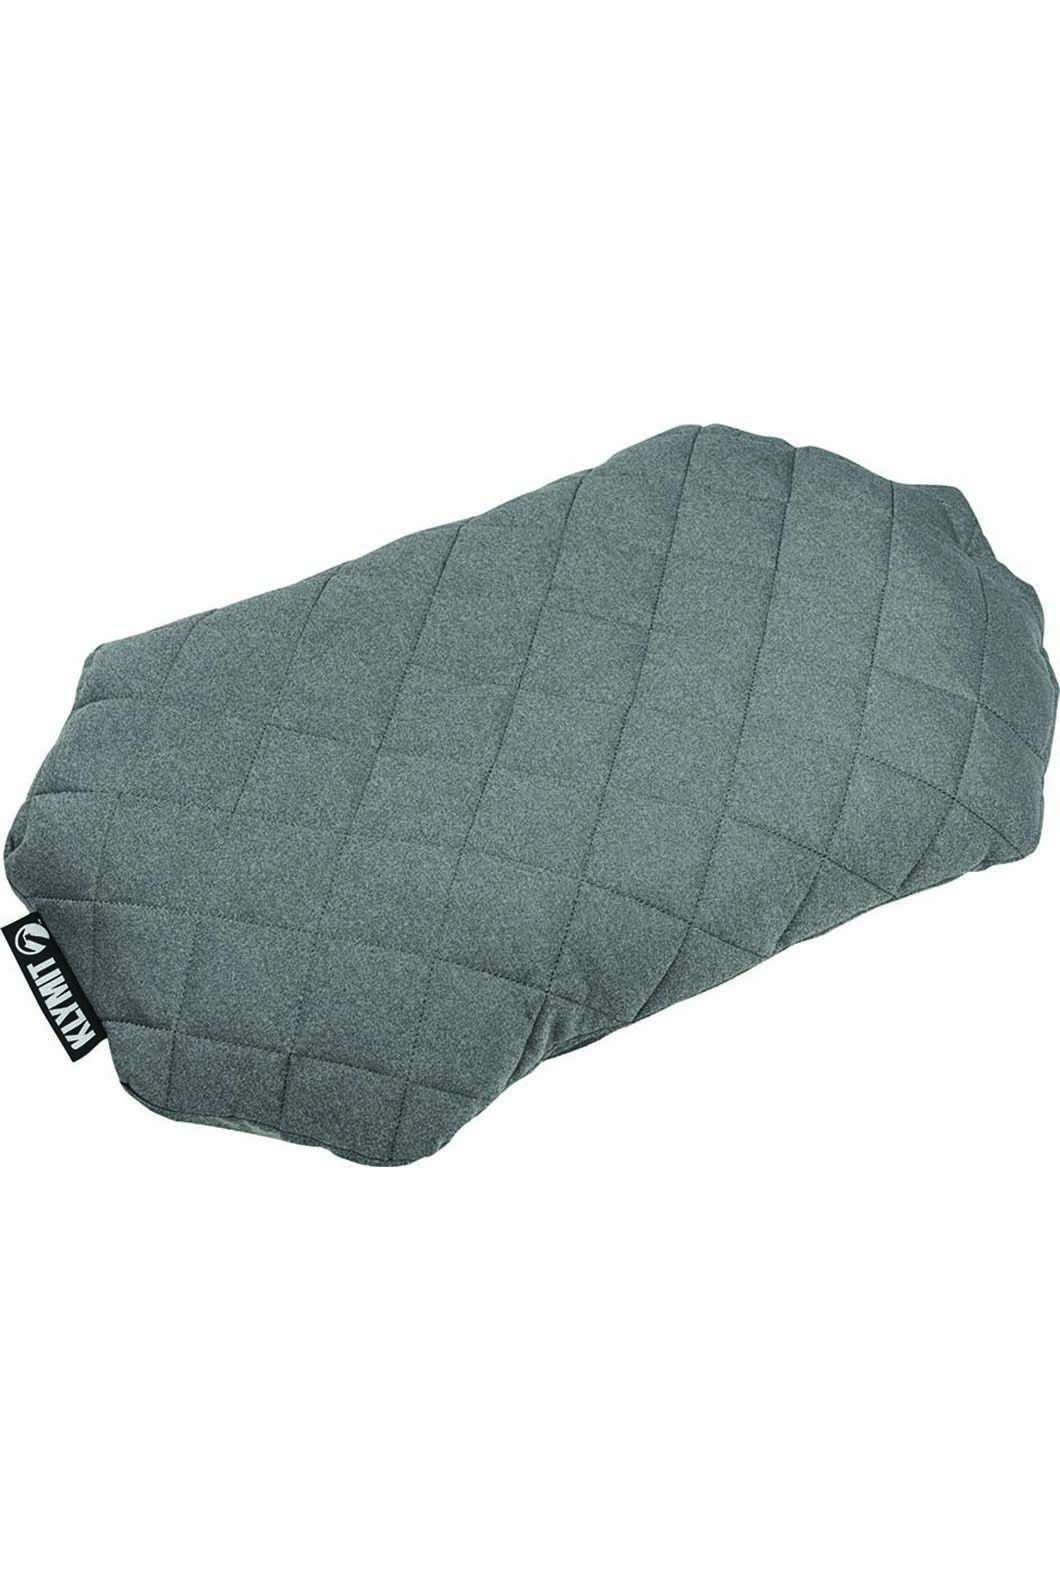 Klymit Luxe Quilted Pillow, None, hi-res